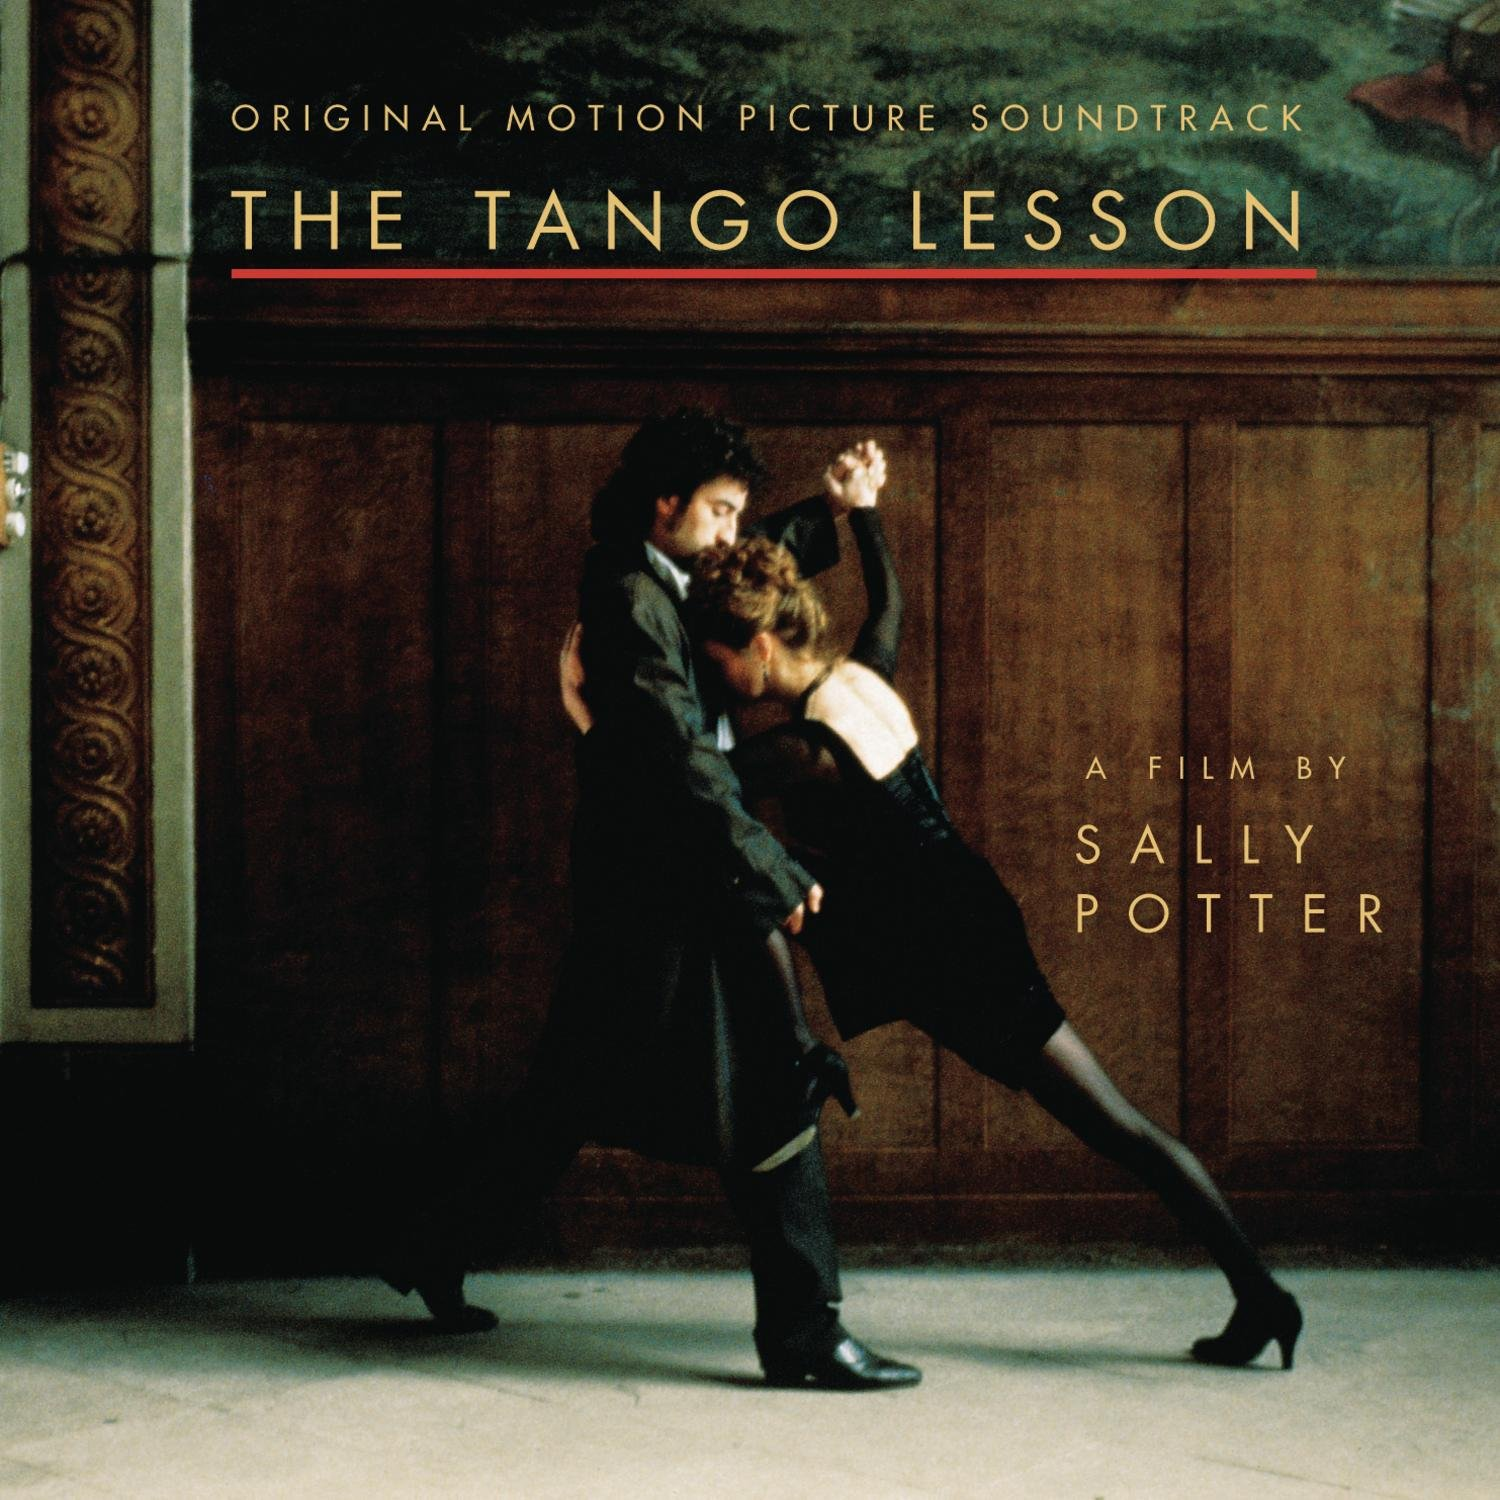 The Tango Lesson Soundtrack 1997 Film